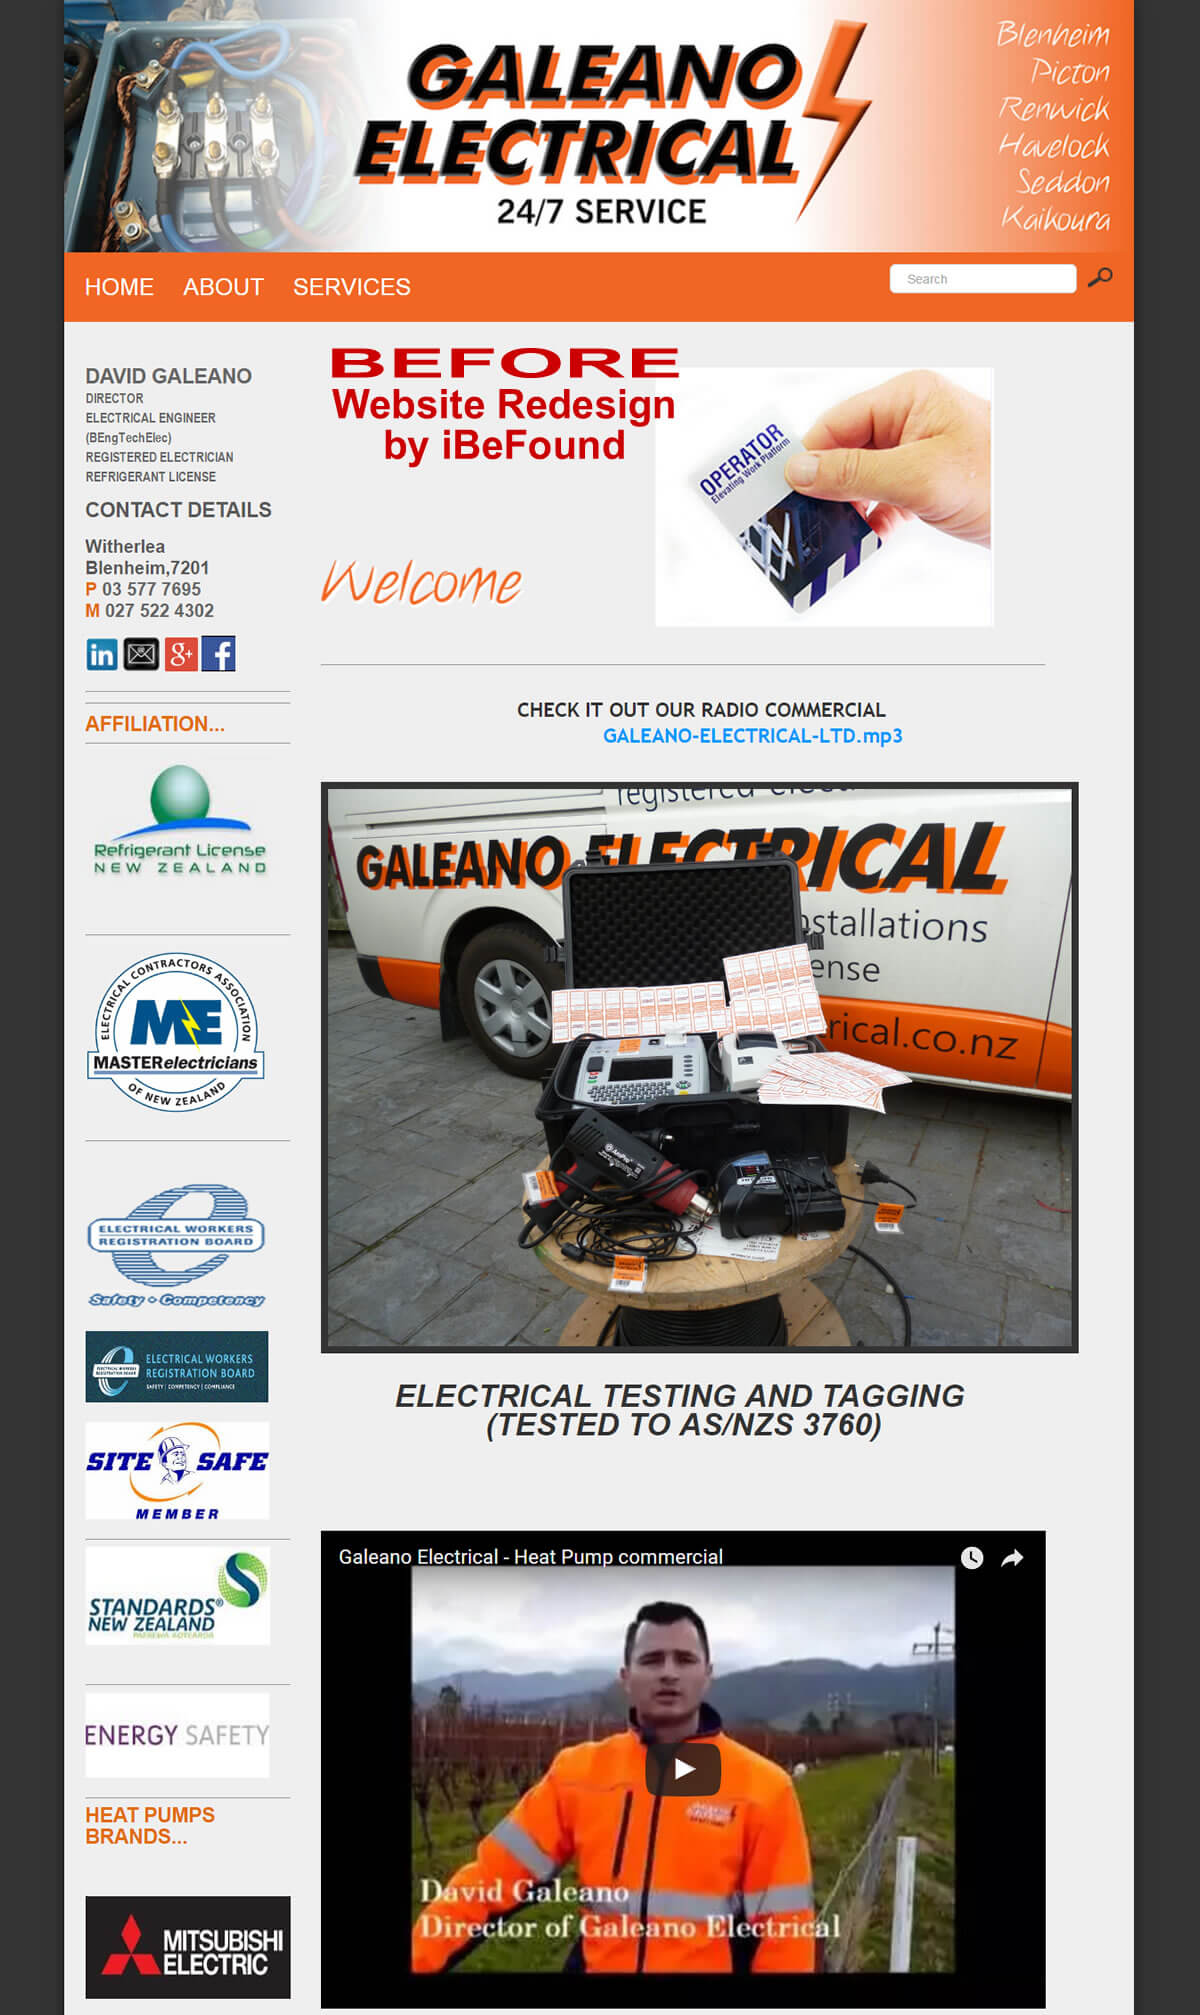 Homepage Of Galeano Electrical Before Website Redesign By Ibefound